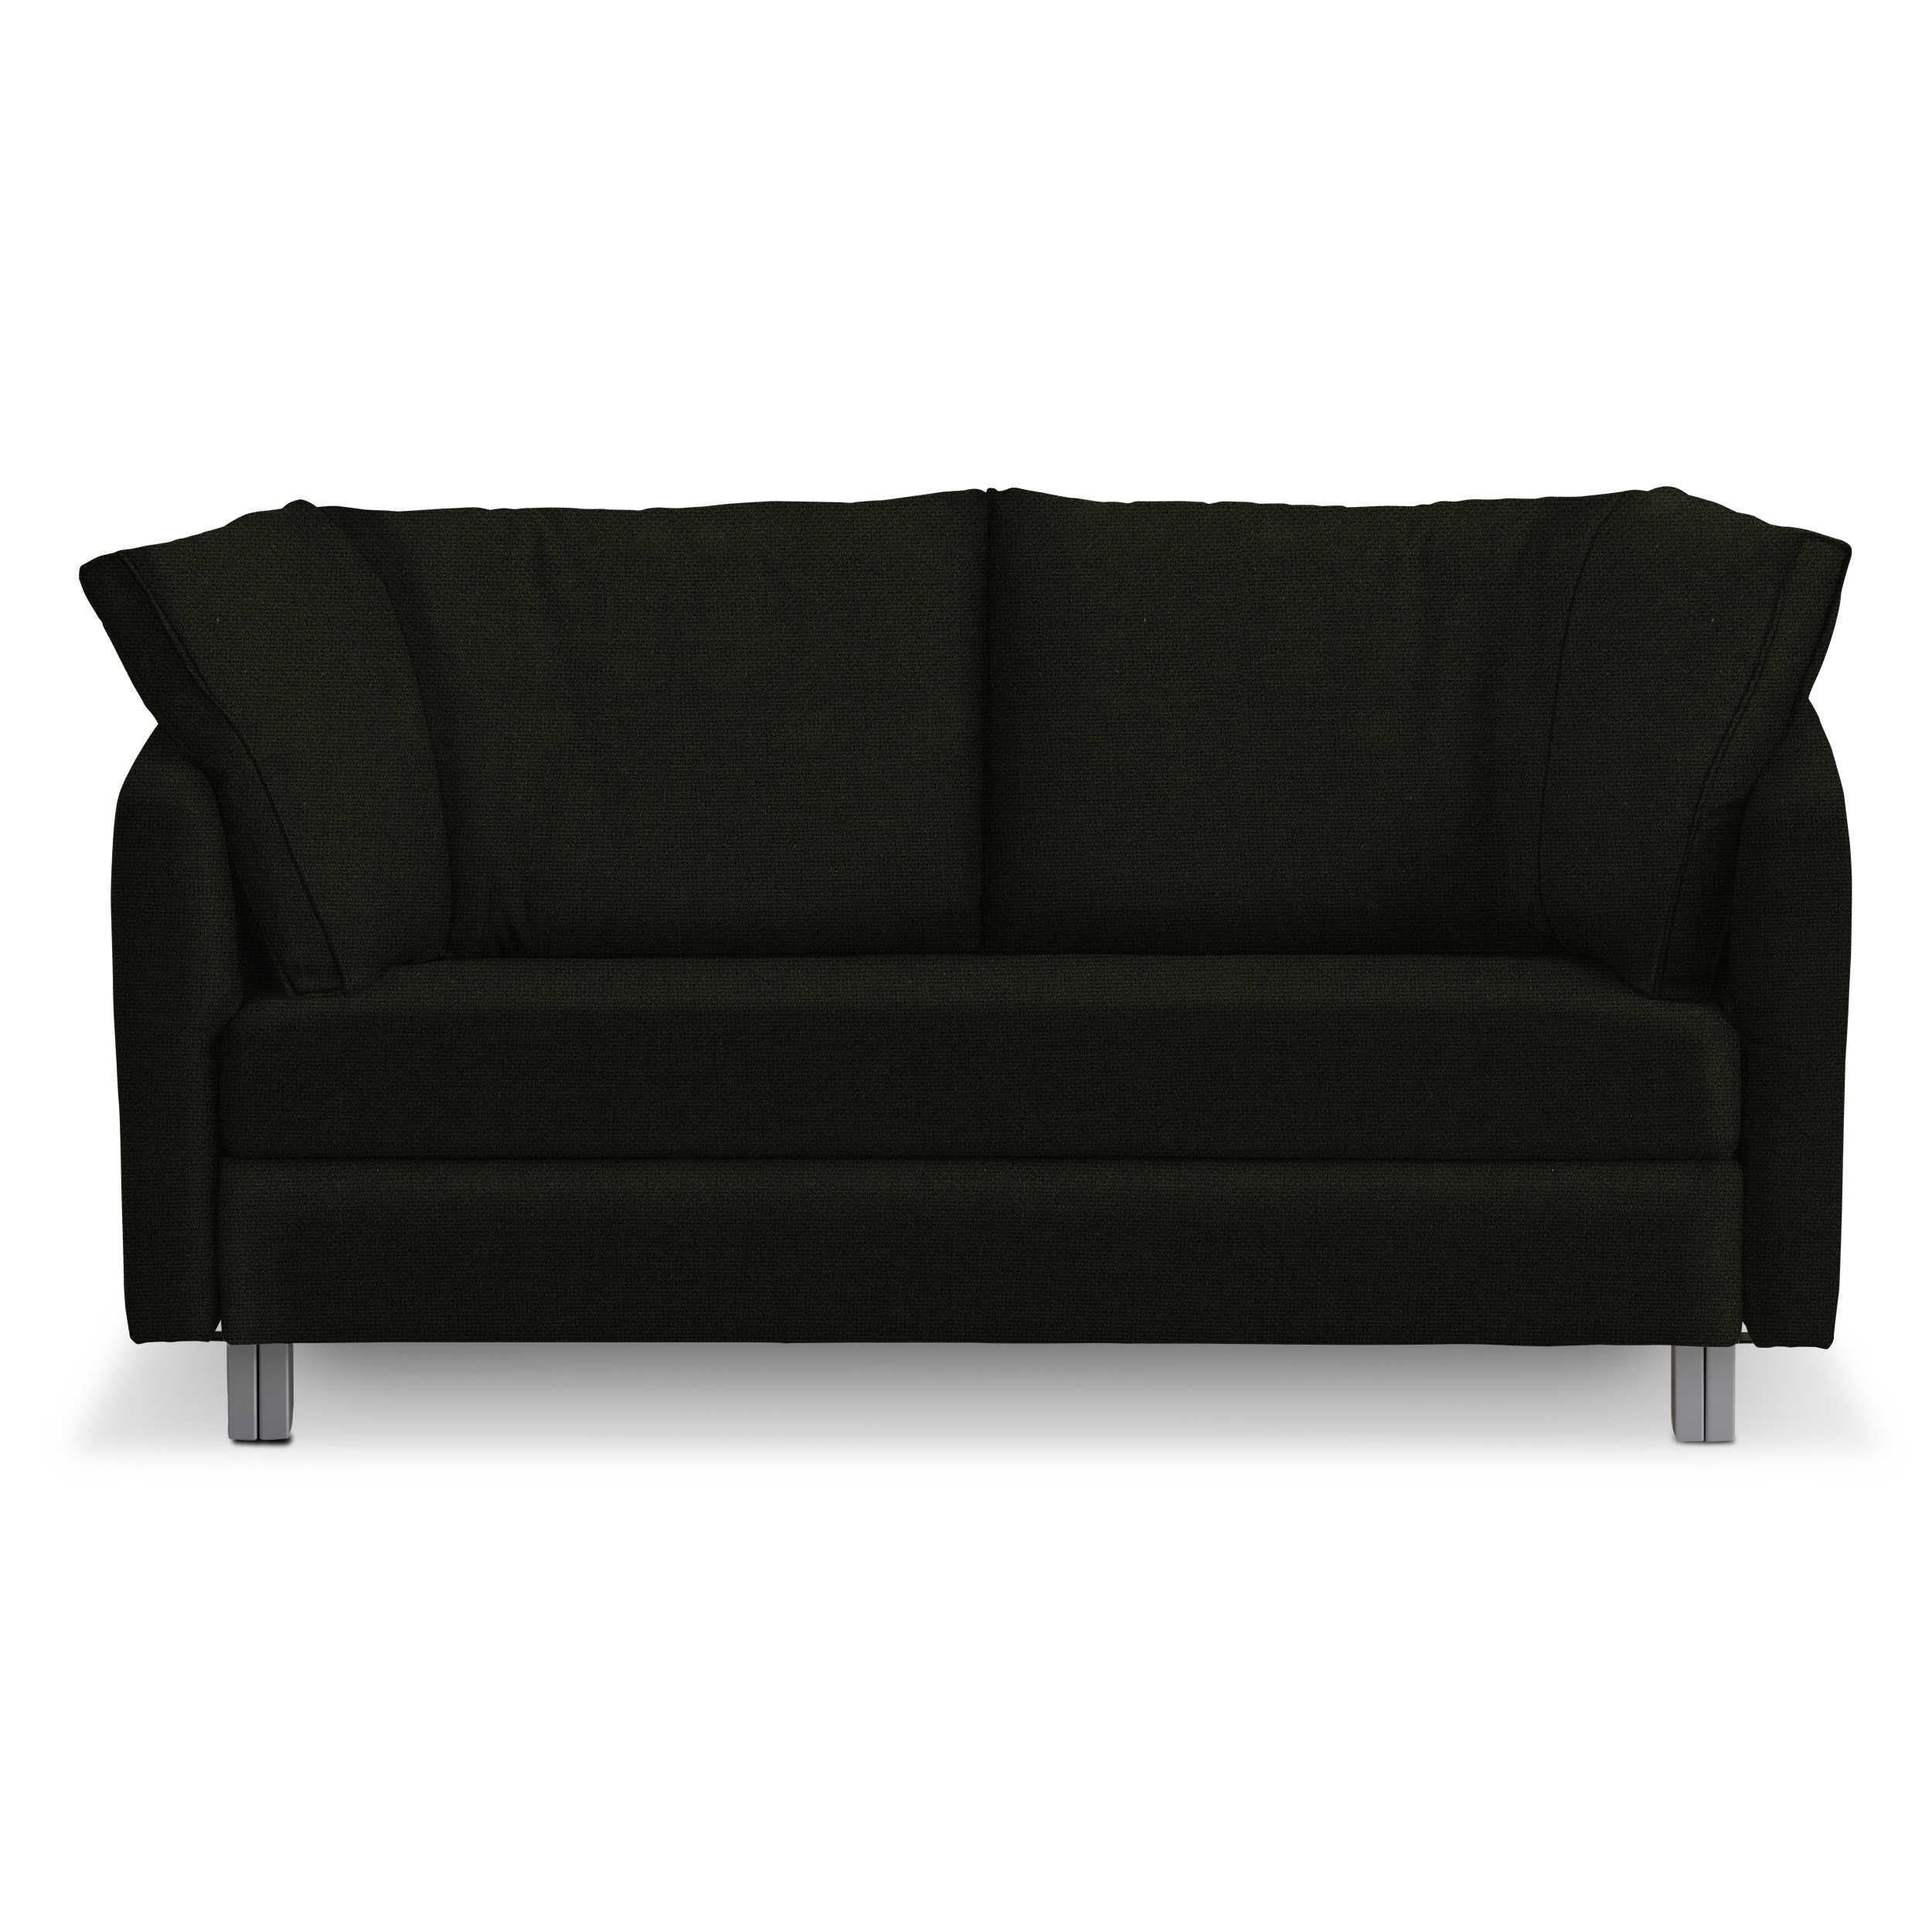 franz fertig schlafsofa mara schwarz stoff online kaufen. Black Bedroom Furniture Sets. Home Design Ideas